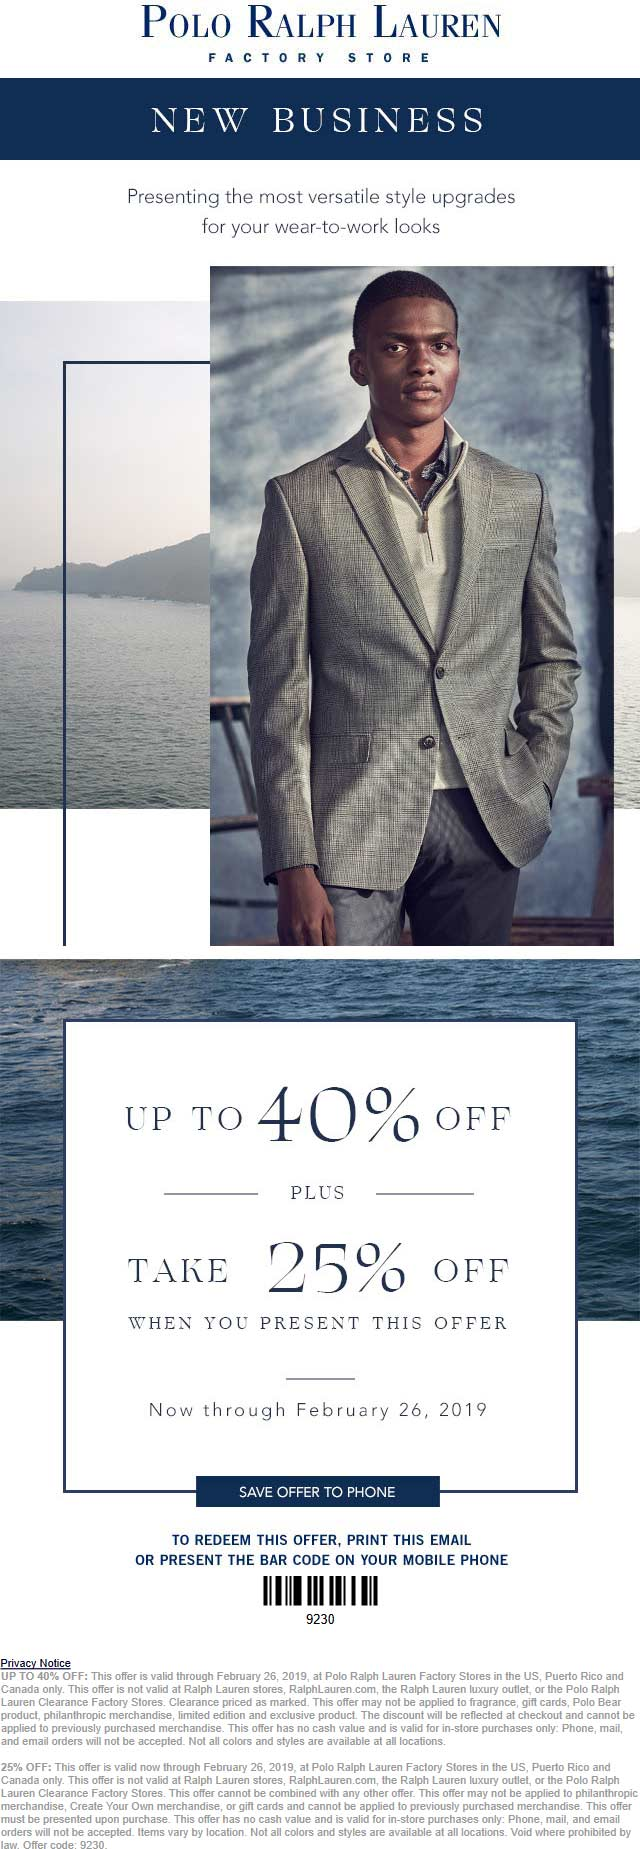 Ralph Lauren Coupon September 2019 25% off at Polo Ralph Lauren & Factory locations